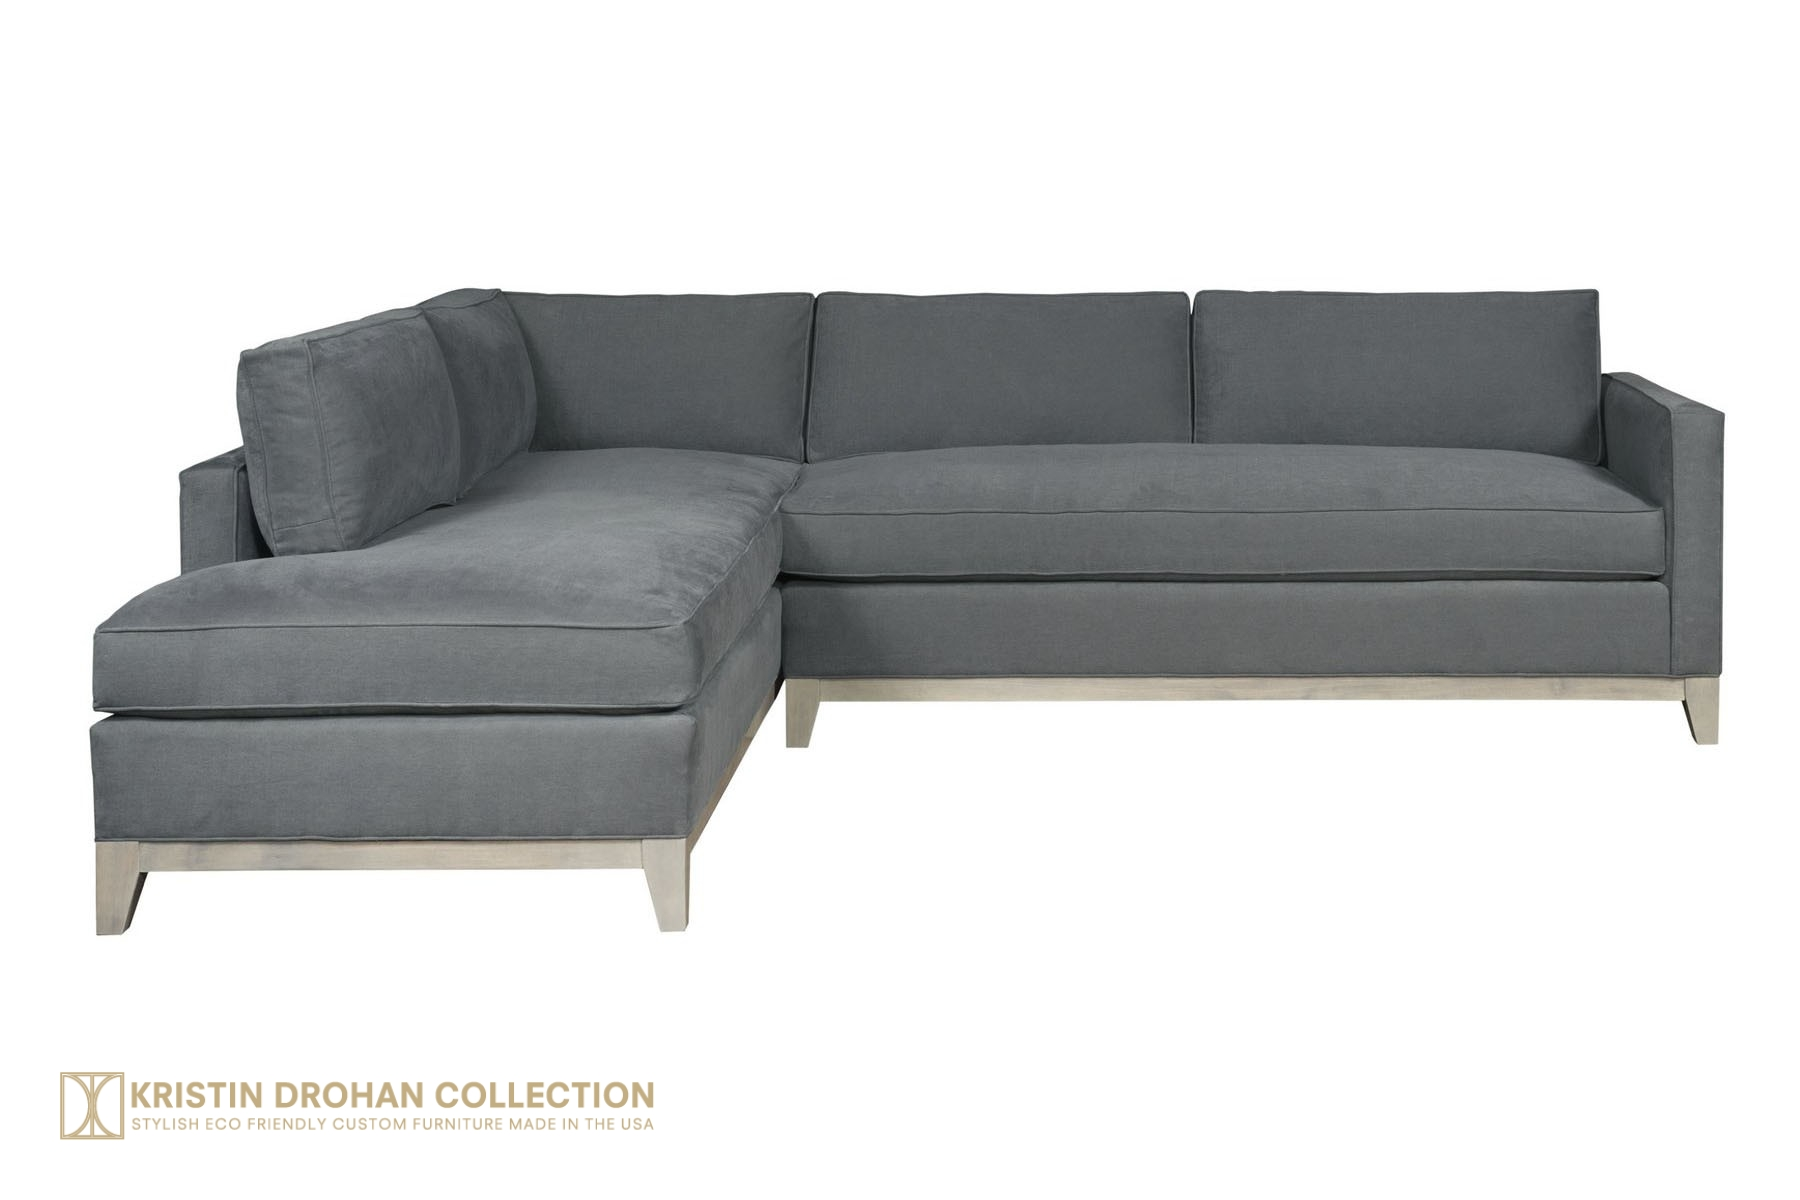 Keegan Blue sectional straight on